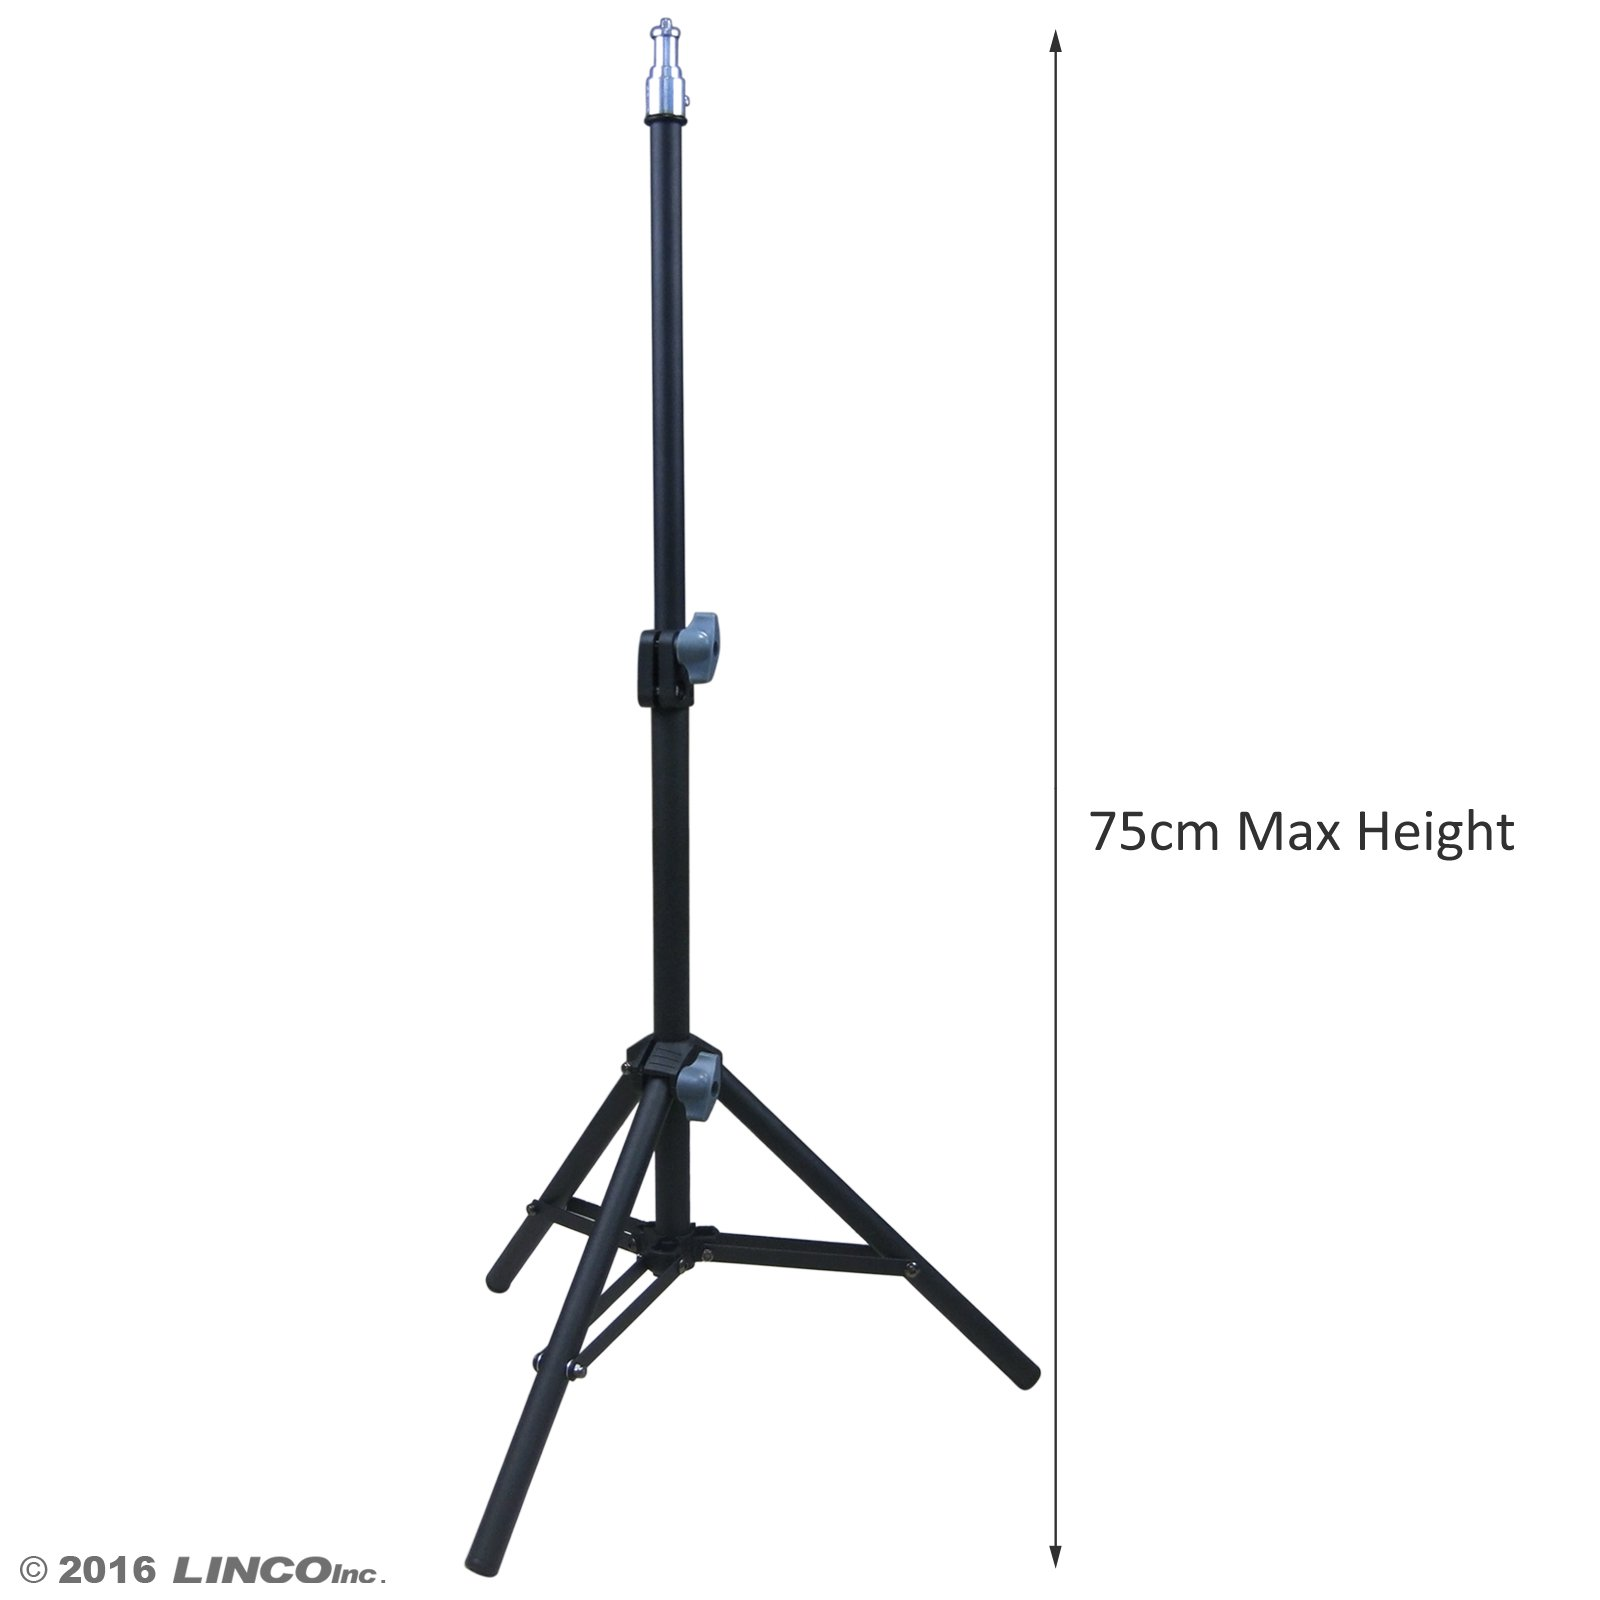 Linco Lincostore Photography Back Light Stands with 75cm Max Height for Relfectors, Softboxes, Lights, Umbrellas, Backgrounds